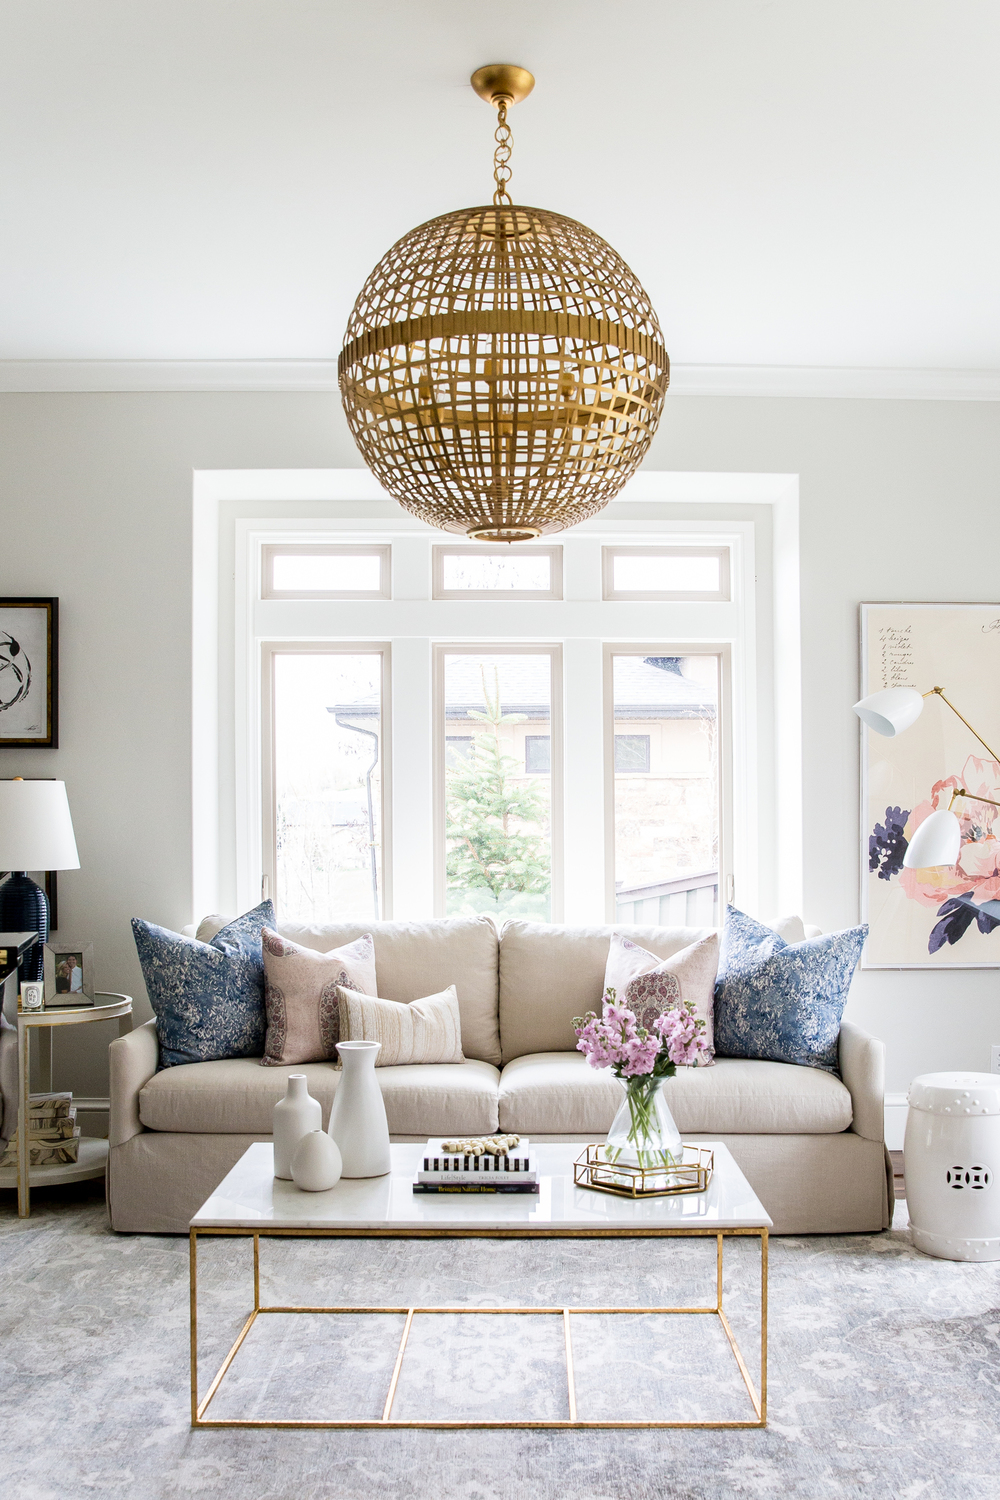 Dream home: Lots of natural light, architectural details, and ...